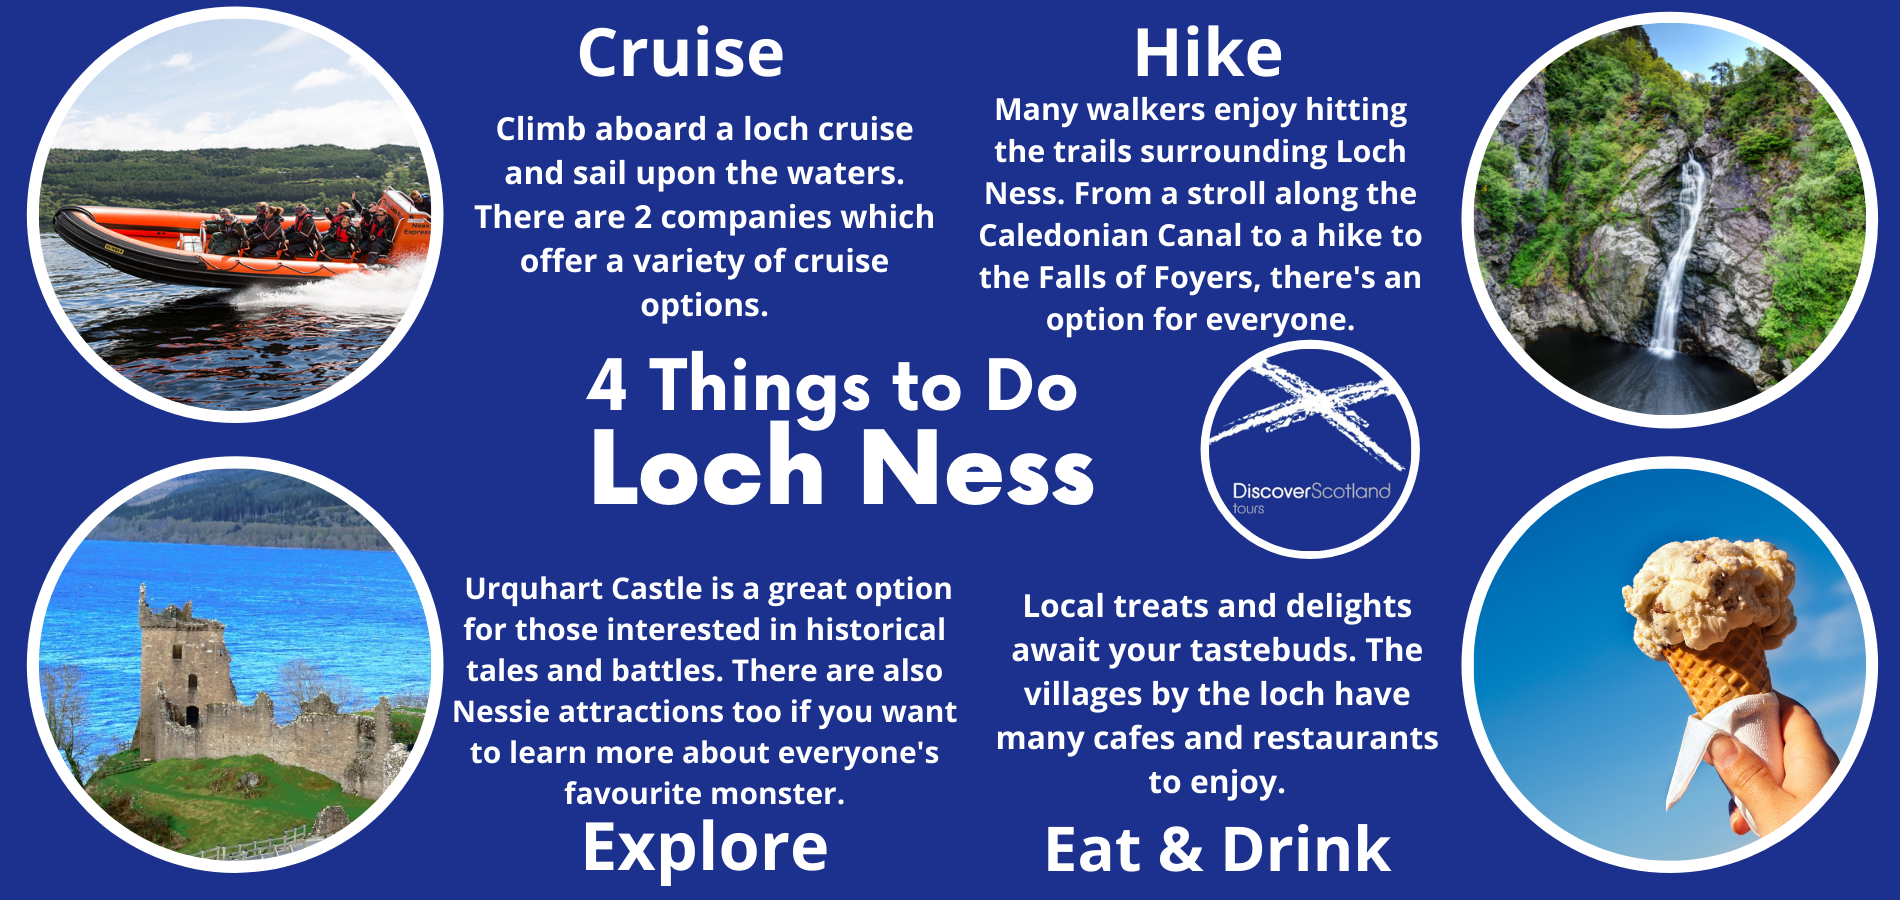 An infographic describing 4 things to do at Loch Ness